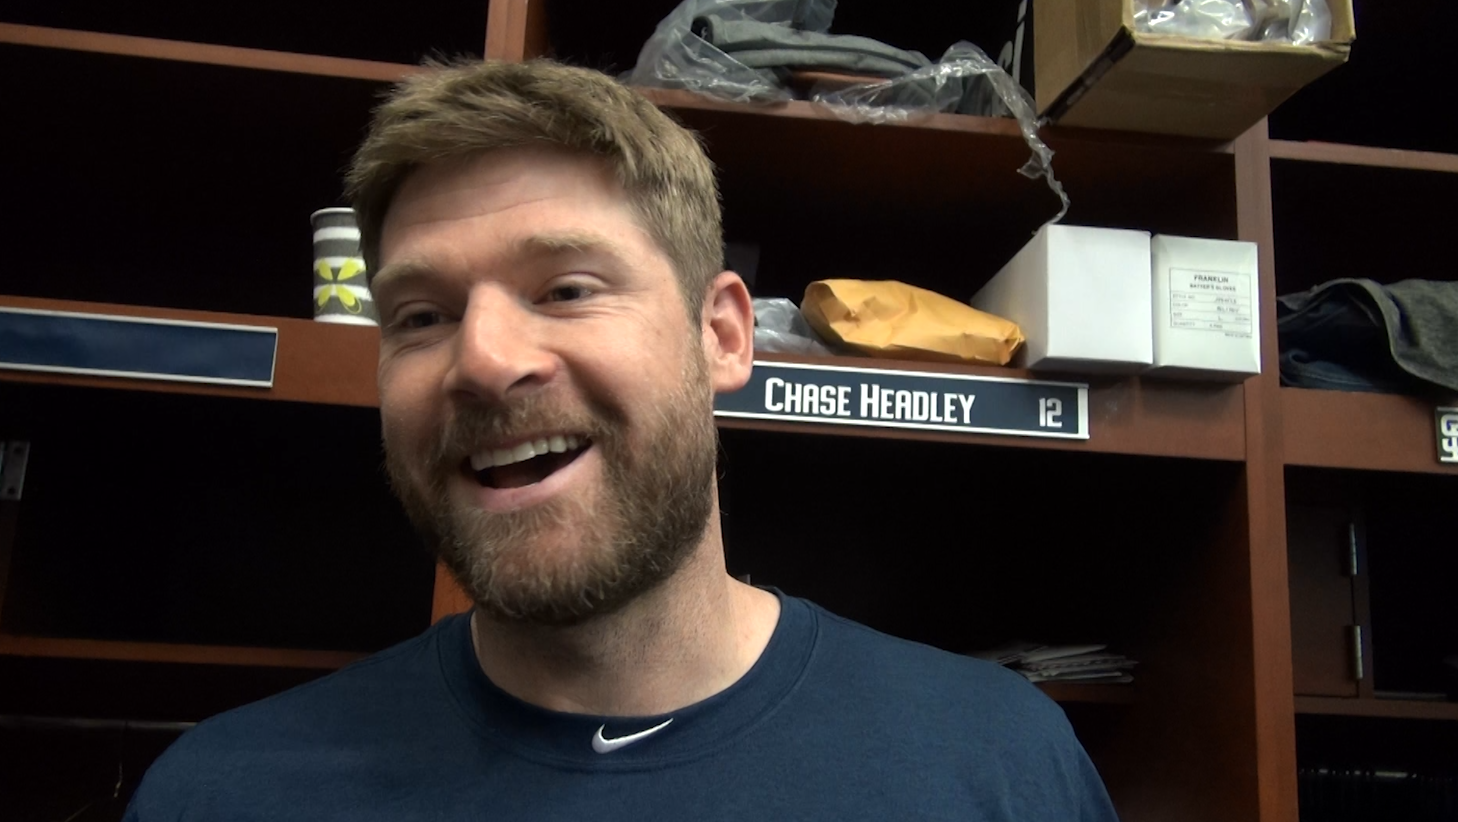 Sd-sp-padres-chase-headley-arrives-spring-training-0217